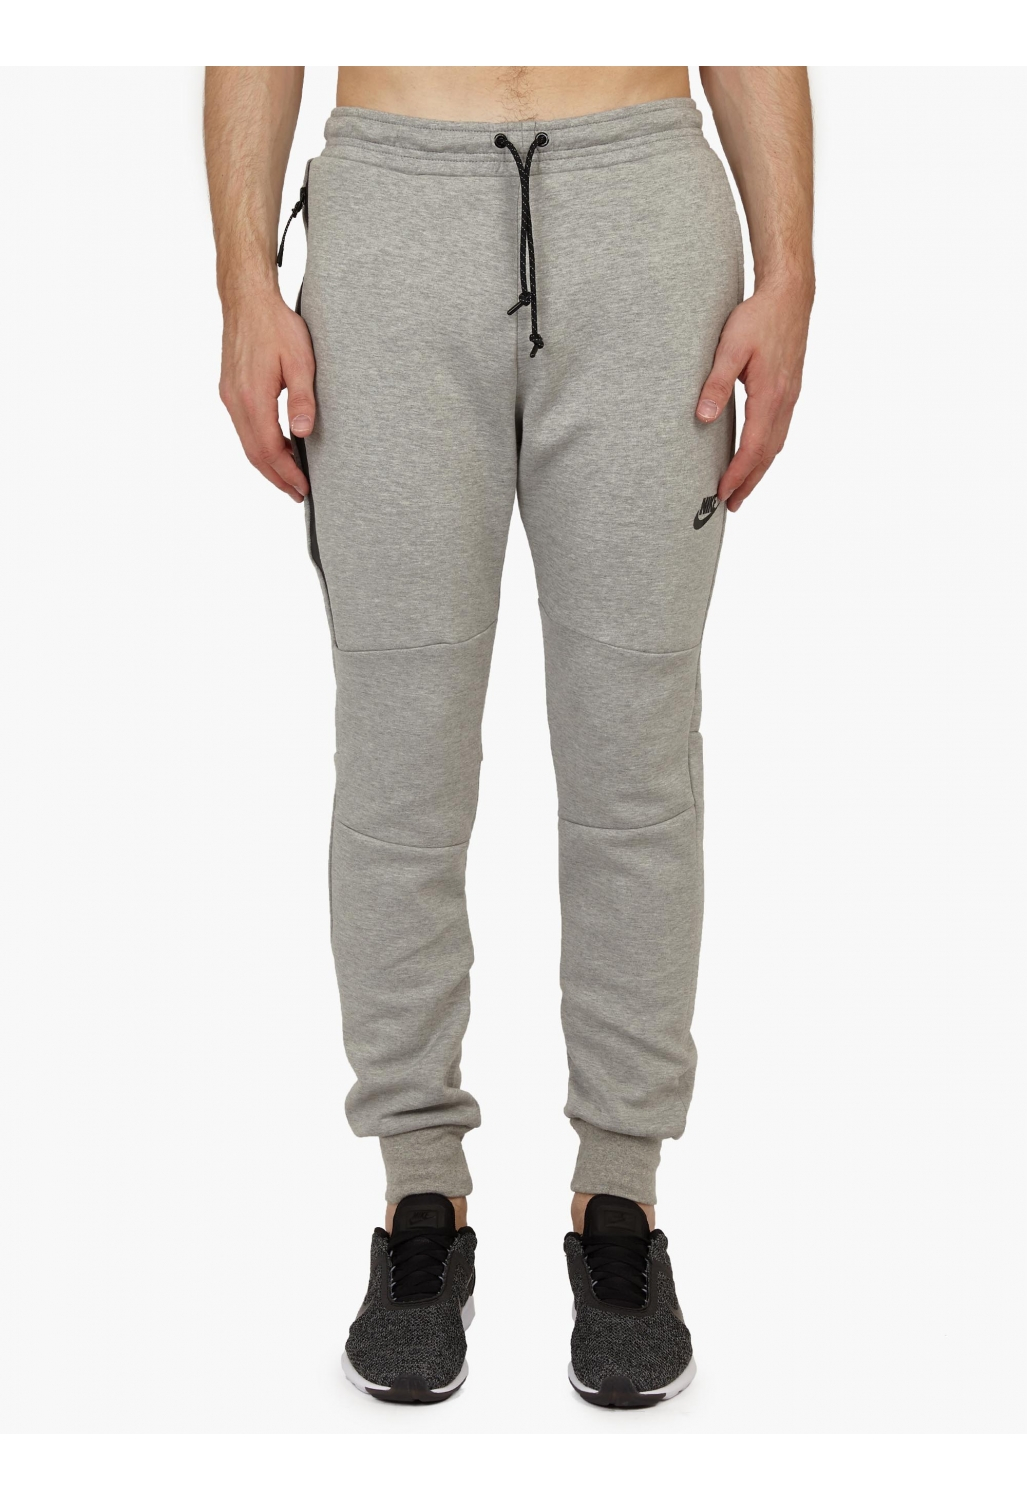 Beautiful Nike Sportswear Tech Fleece Pant  79 99 Orig  90 00 Color Grey Grey